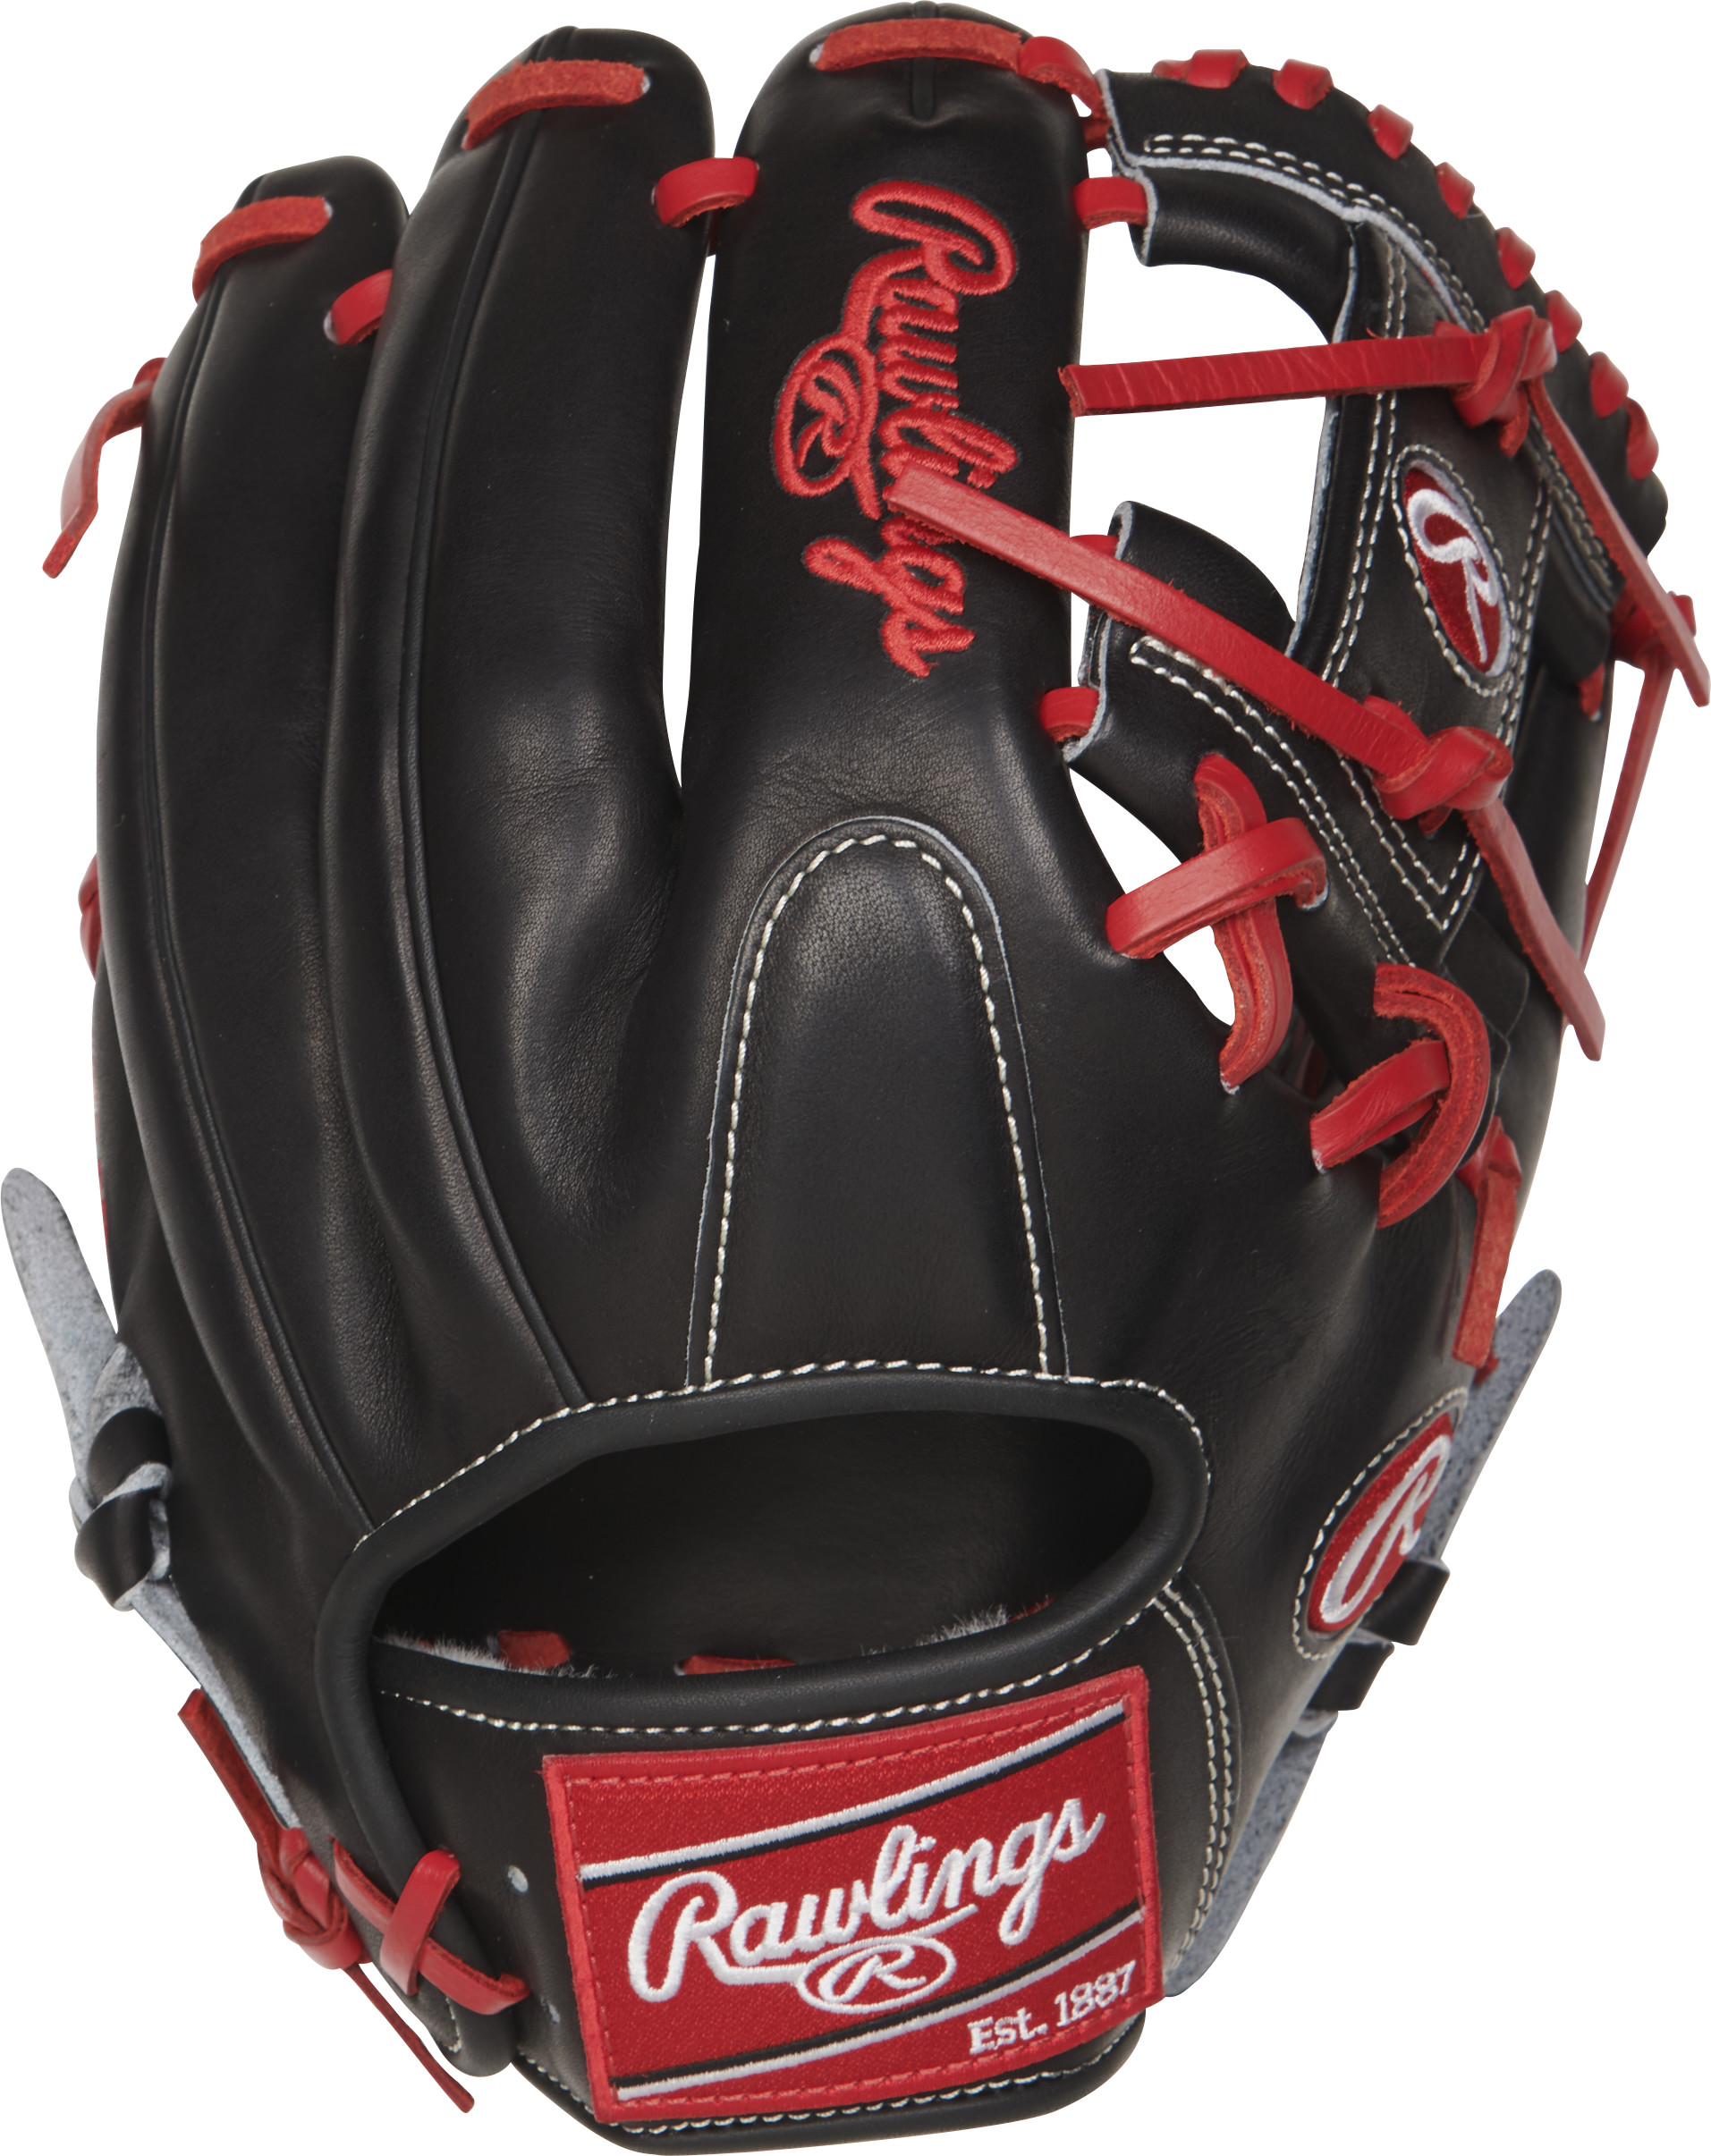 http://www.bestbatdeals.com/images/gloves/rawlings/PROSFL12-2.jpg